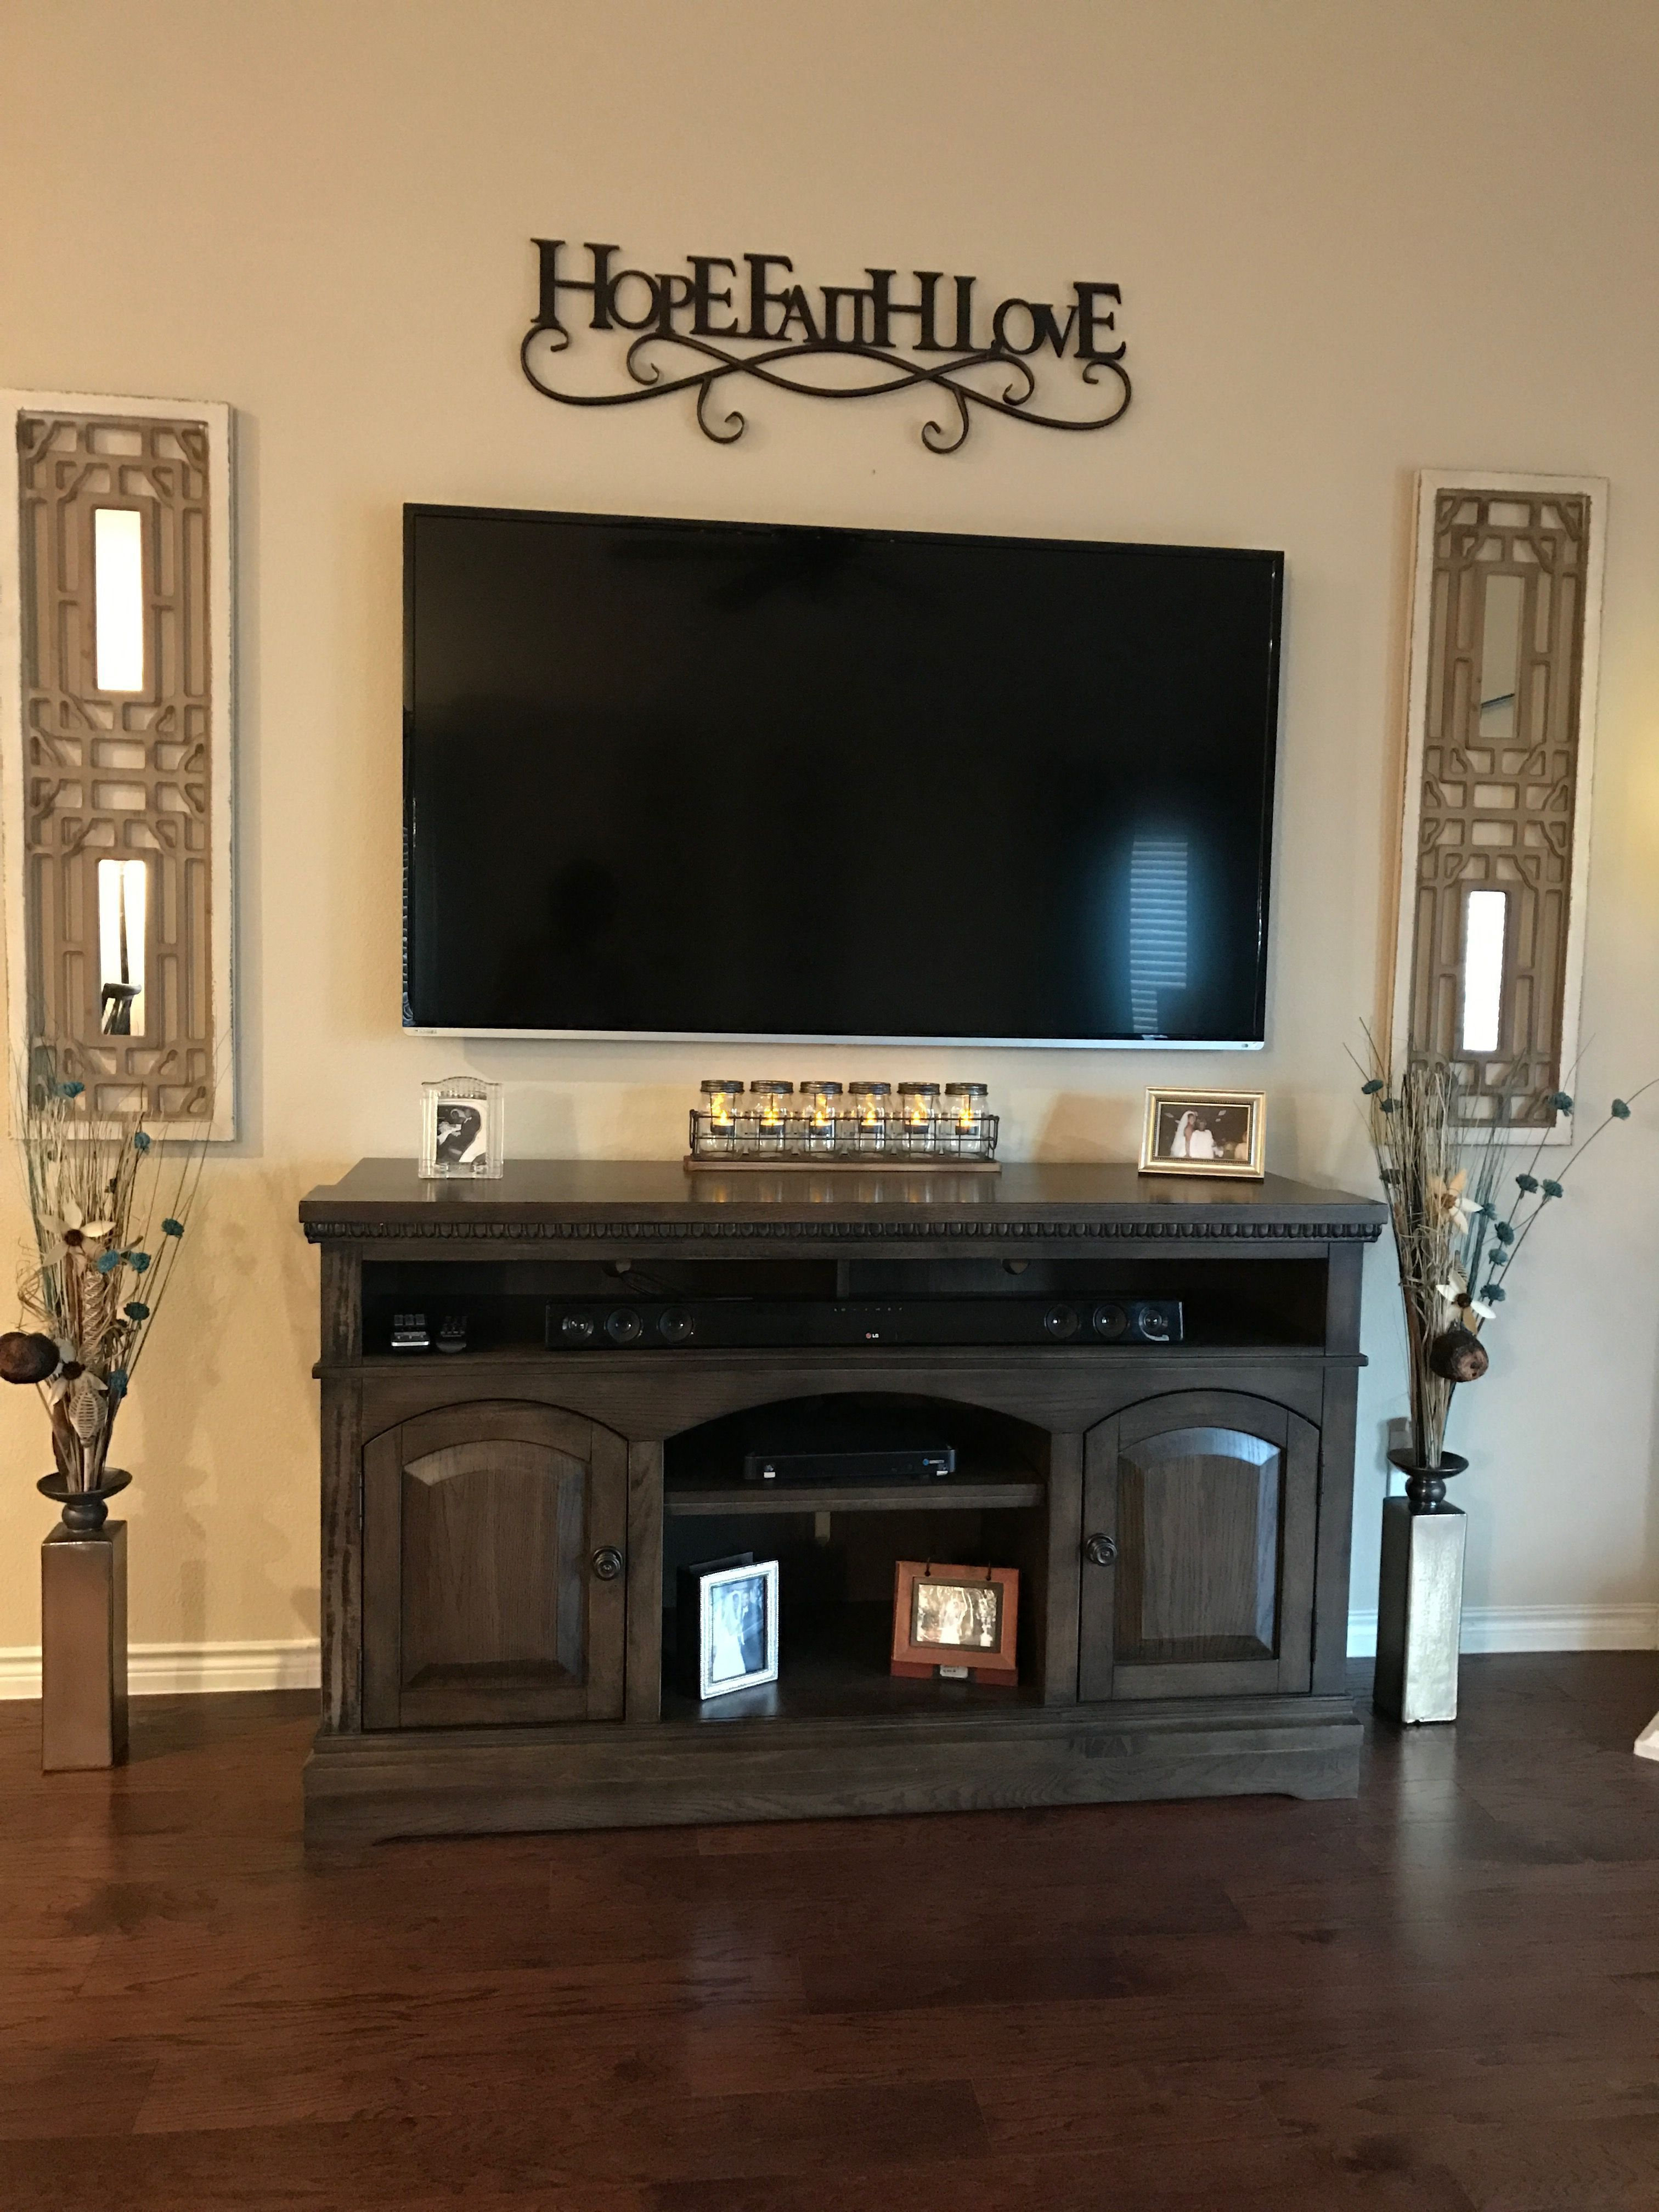 50 Cool Tv Stand Designs For Your Home Tv Stand Ideas Diy Tv Stand Ideas For Living Room Tv Stand Farmhouse Decor Living Room Tv Decor Farm House Living Room